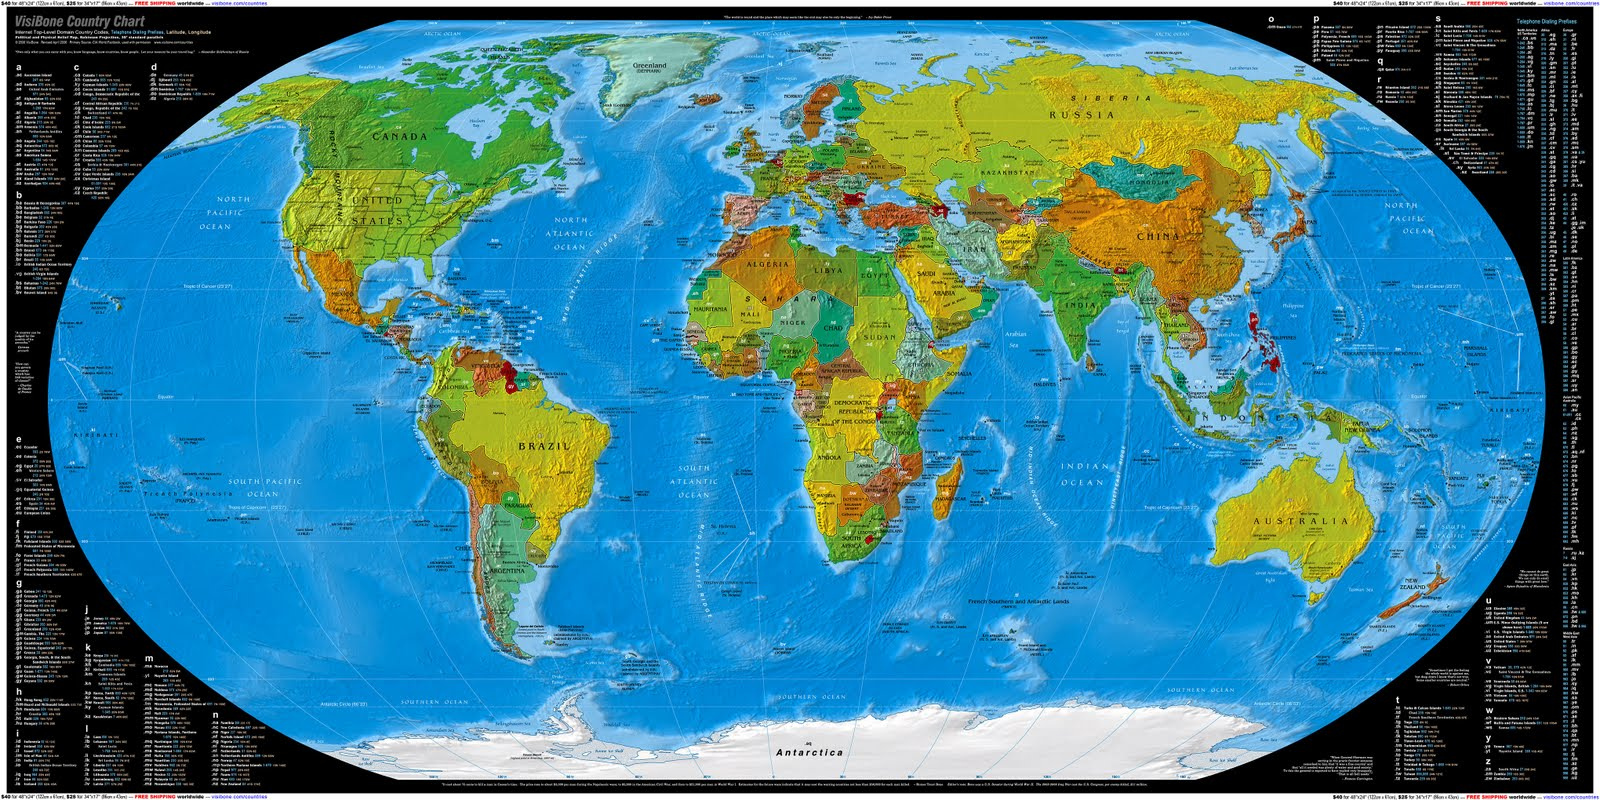 High Resolution World Map with Countries